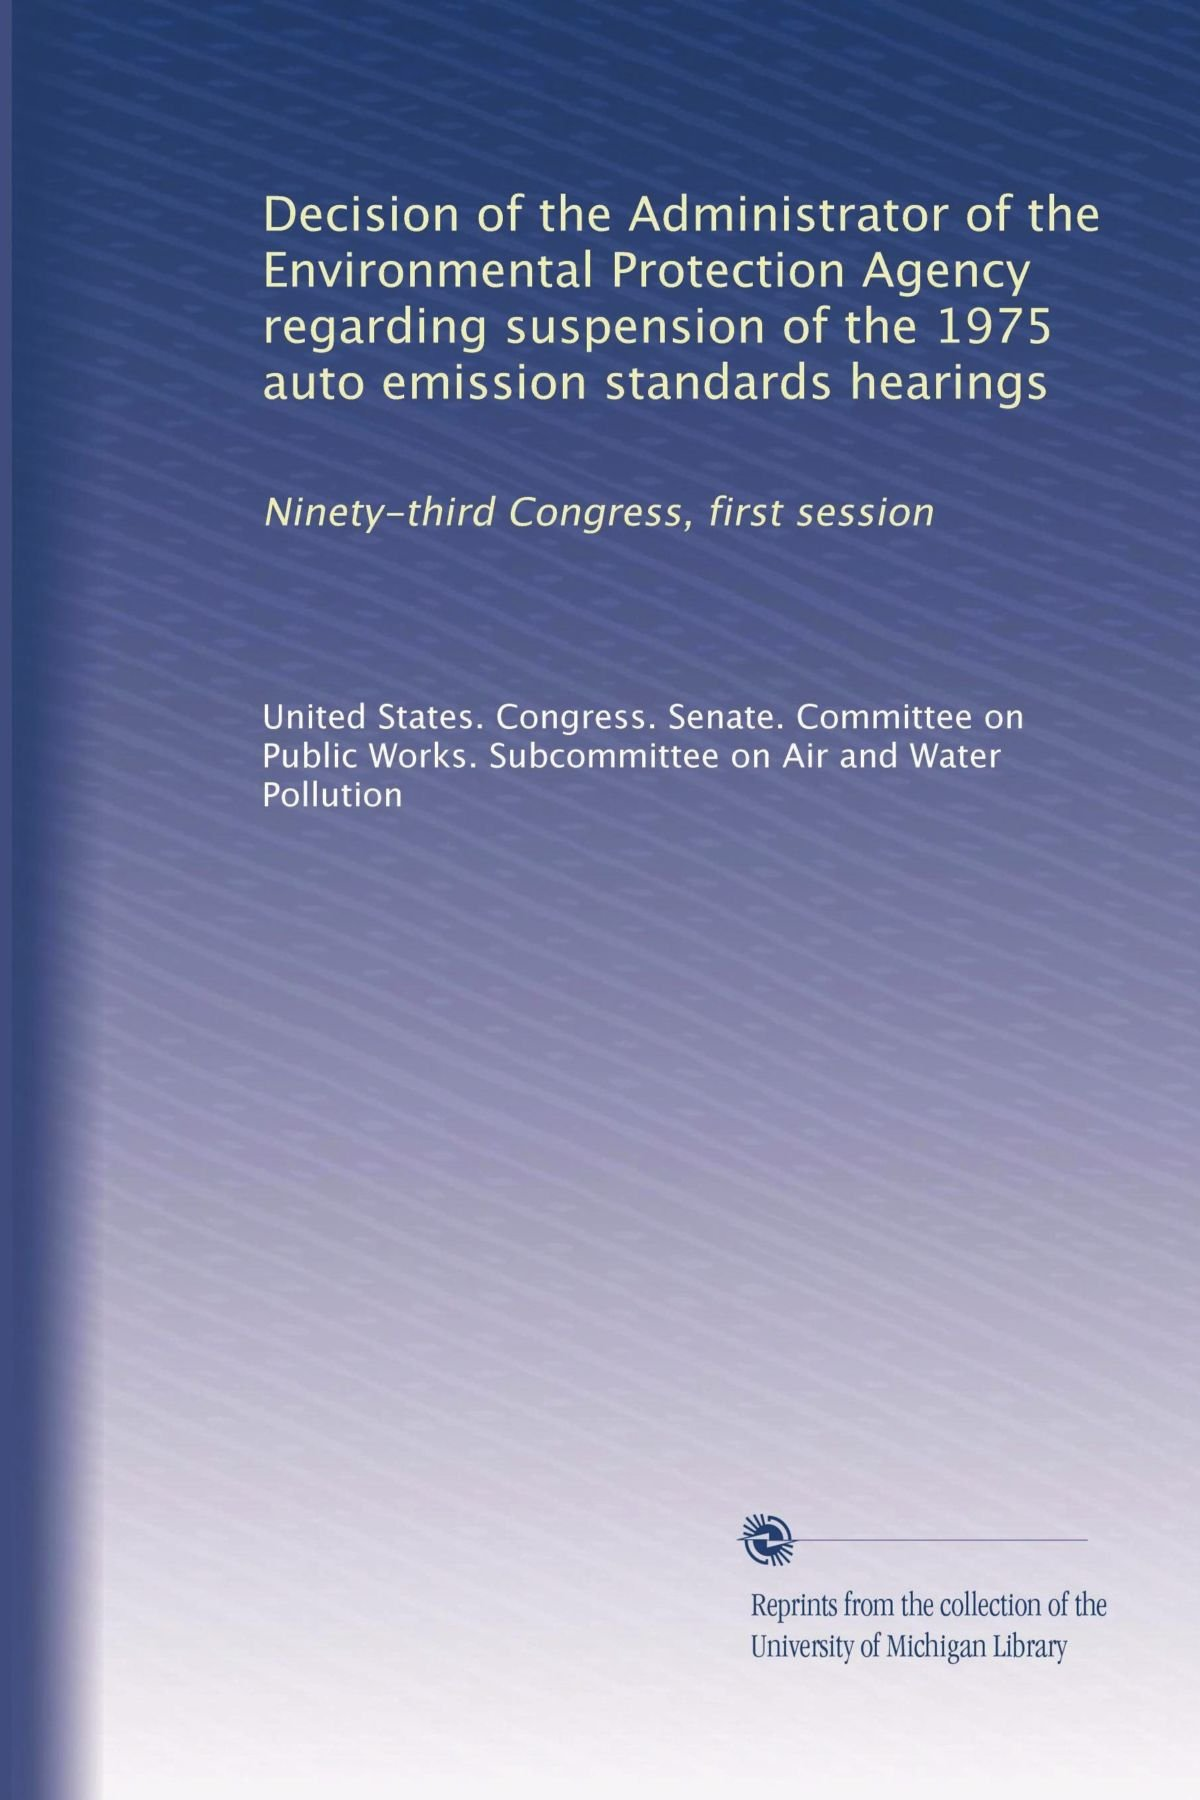 Read Online Decision of the Administrator of the Environmental Protection Agency regarding suspension of the 1975 auto emission standards hearings: Ninety-third Congress, first session PDF